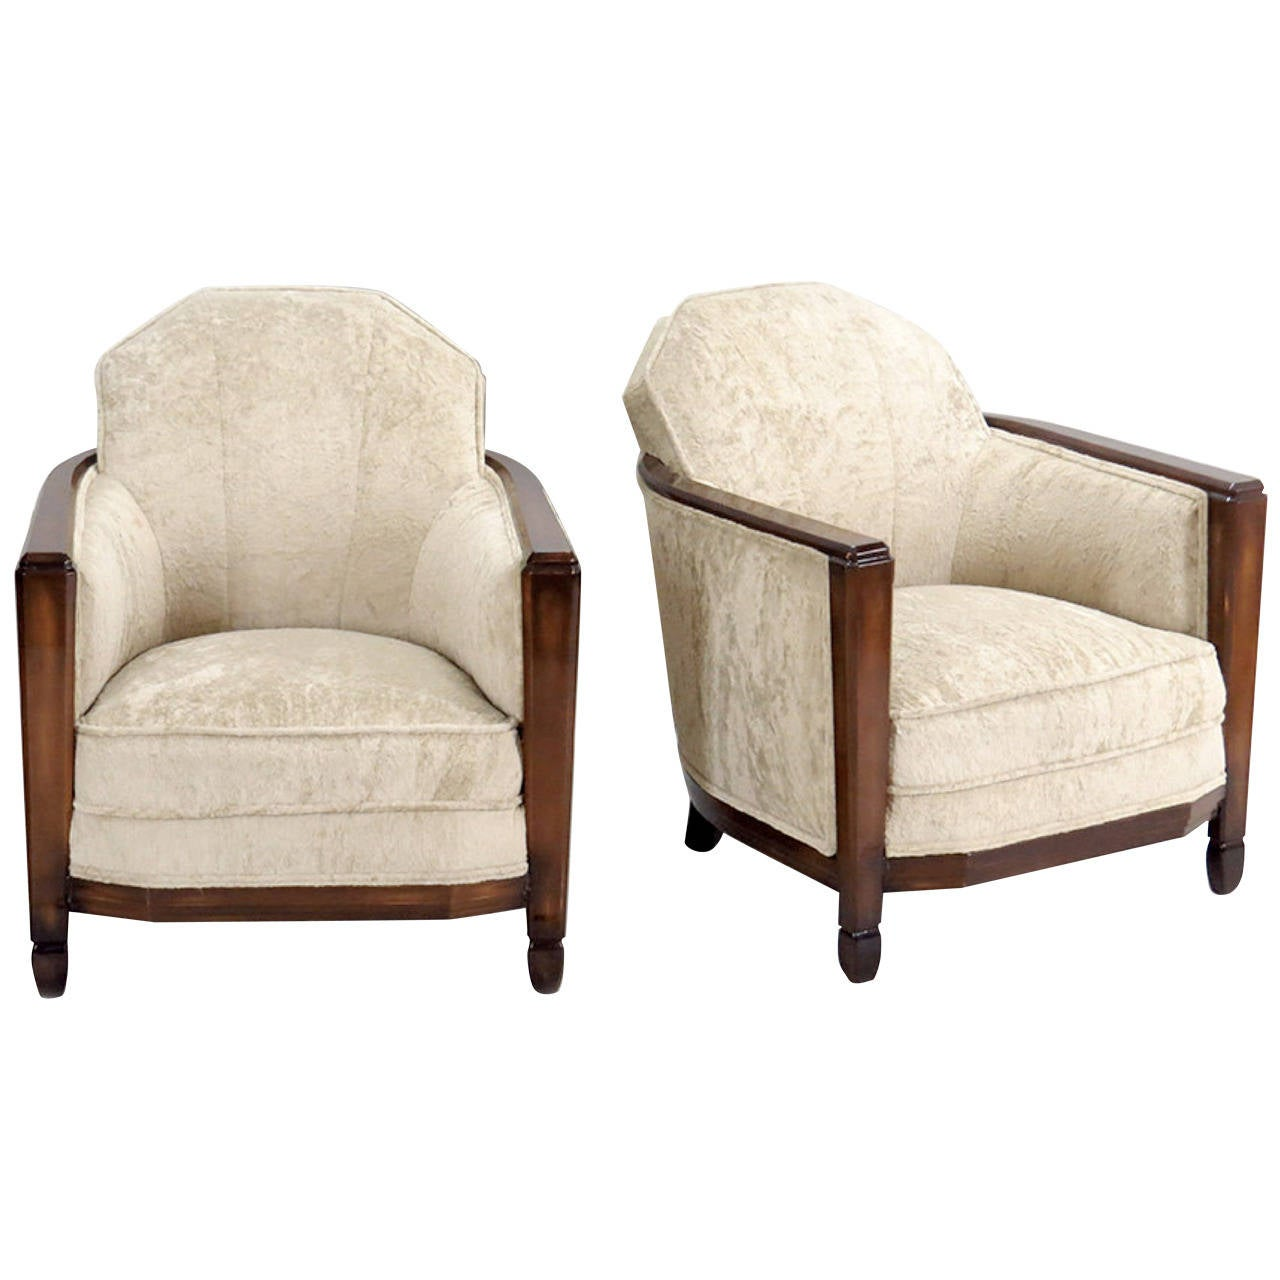 Pair of French Club Chairs Attributed to Paul Follot 1